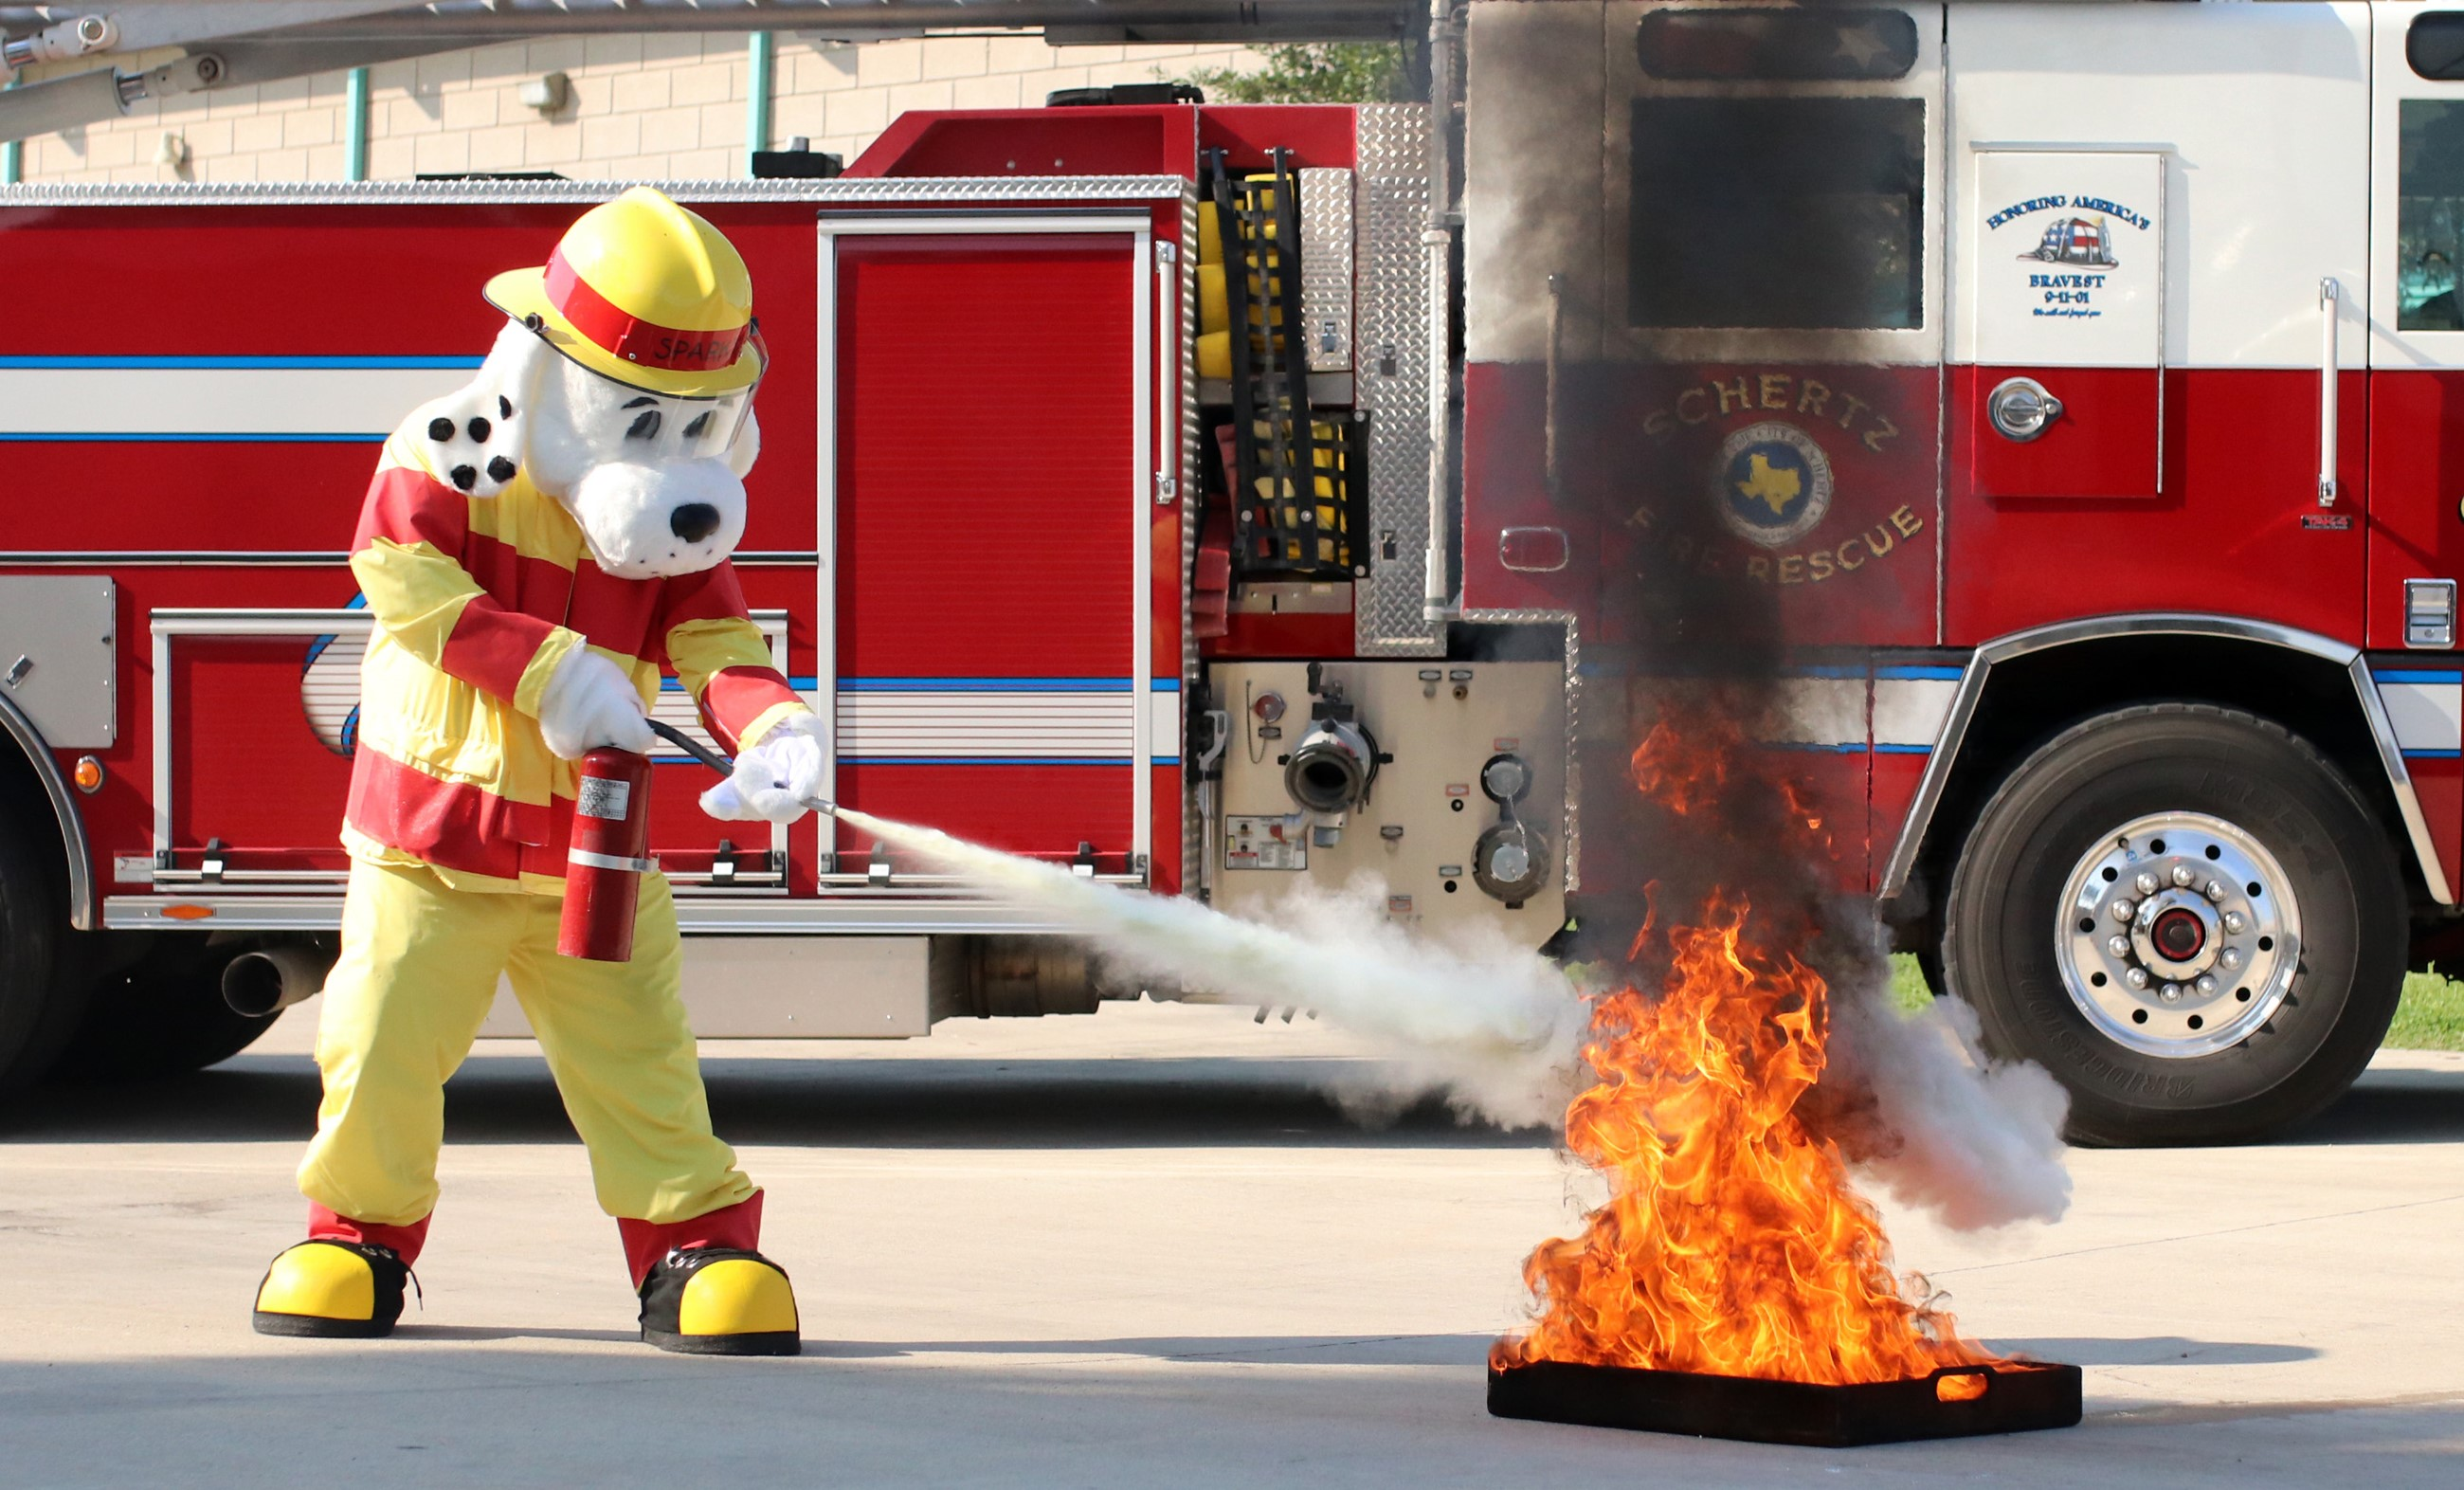 Photo of Sparky extinguishing a fire using a fire extinguisher